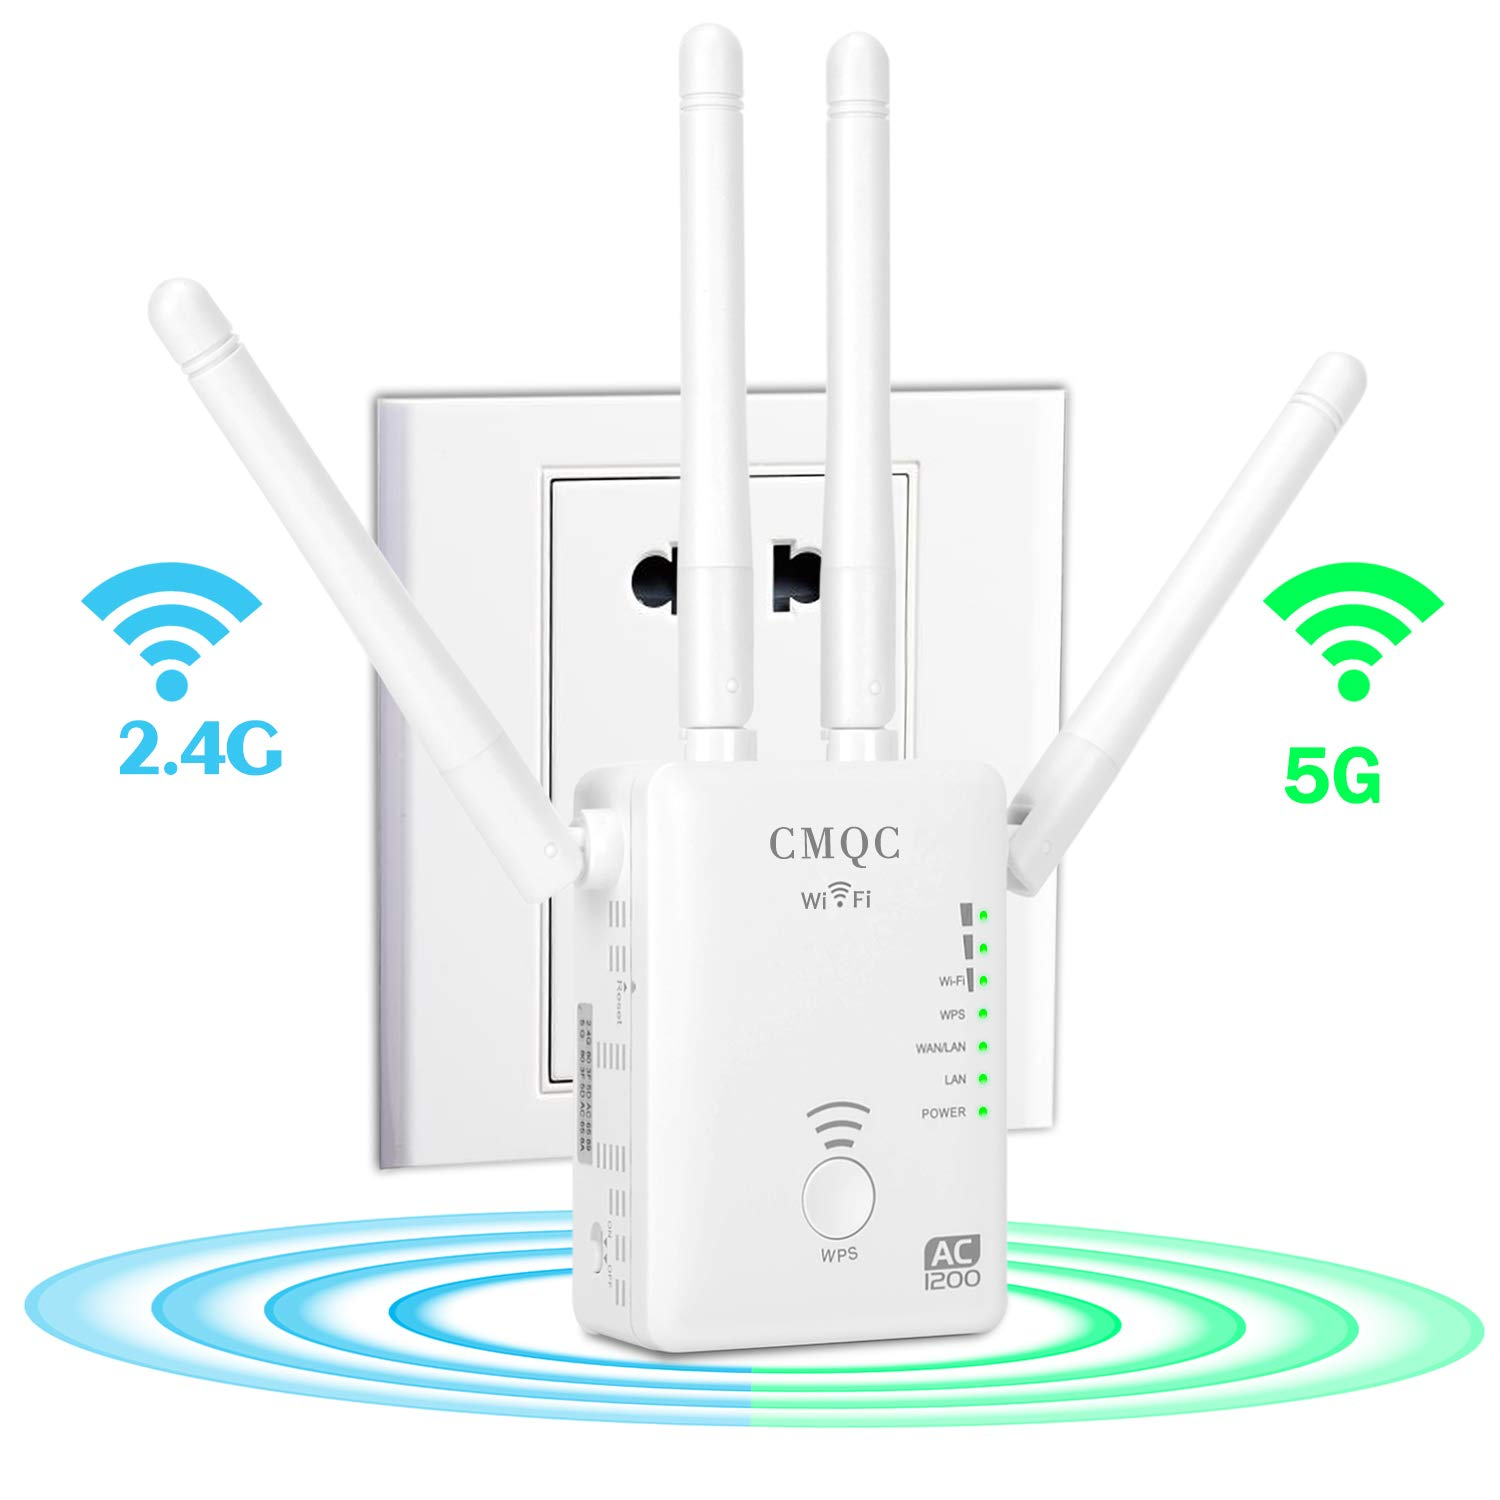 WiFi Extender - AC1200 Dual Band WiFi Repeater | 2.4G and 5G Mini Wi-Fi Signal Booster | Wireless Access Point with 4 Ethernet Antennas to Eliminate Dead Zones